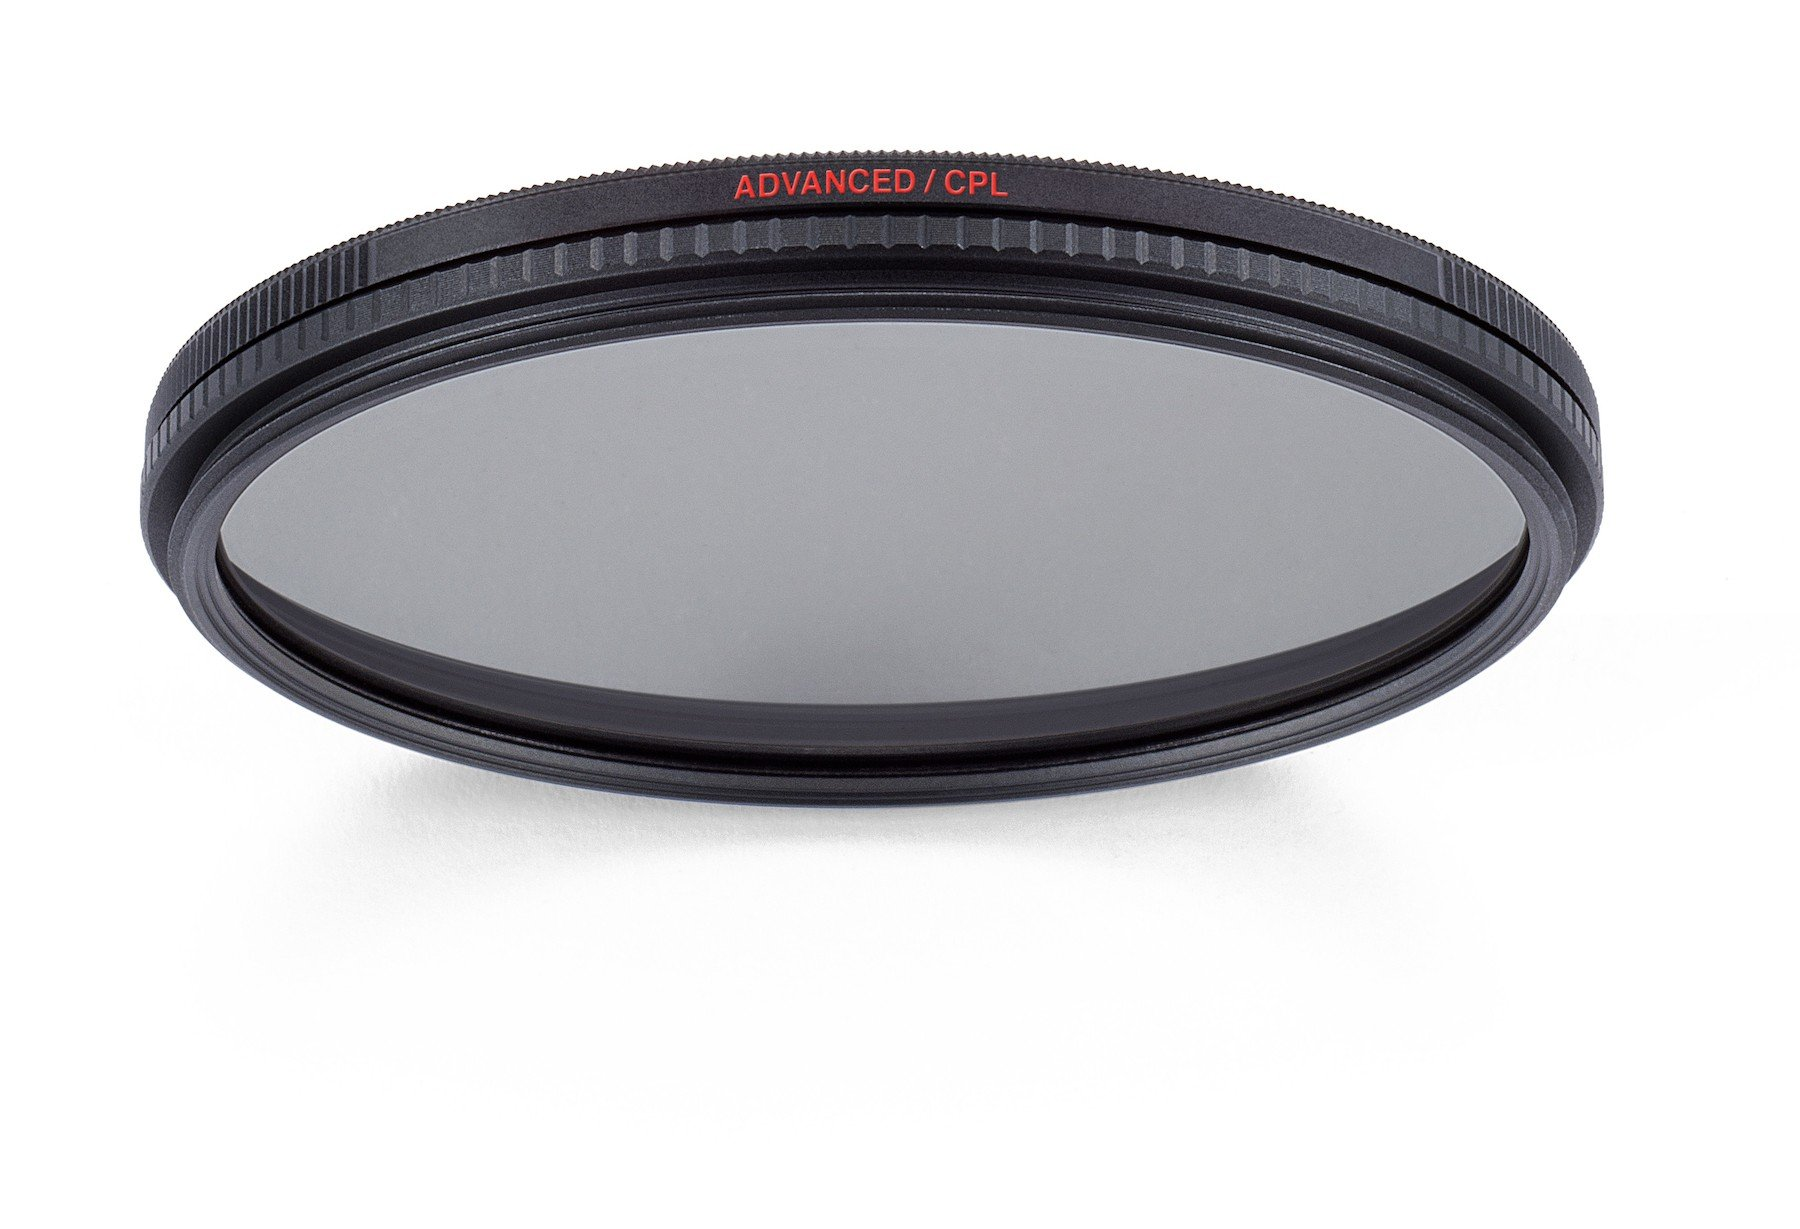 52mm Advanced Circular Polarizing Filter